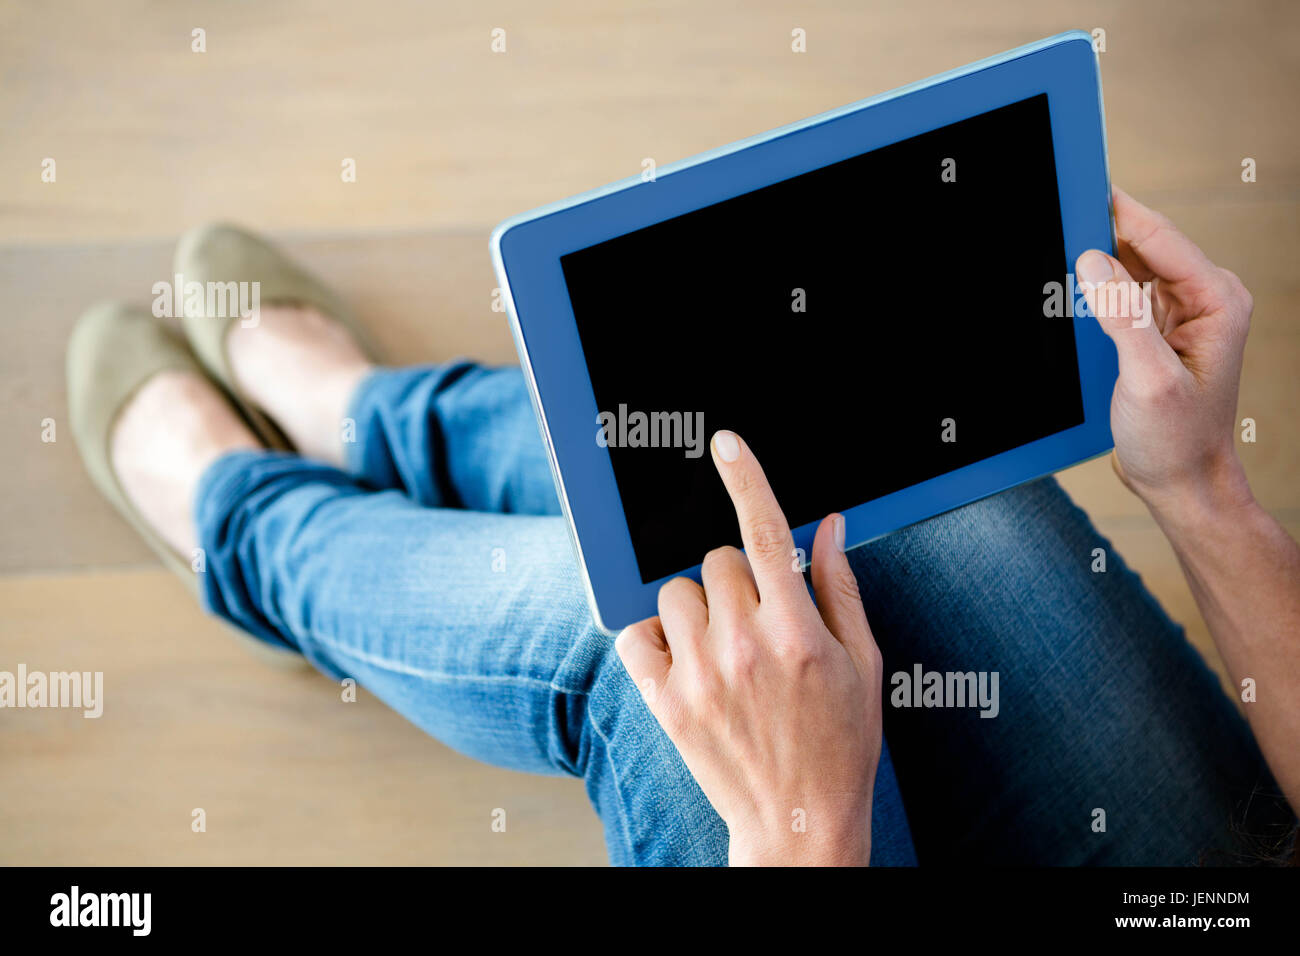 finger tapping a touchscreen tablet - Stock Image